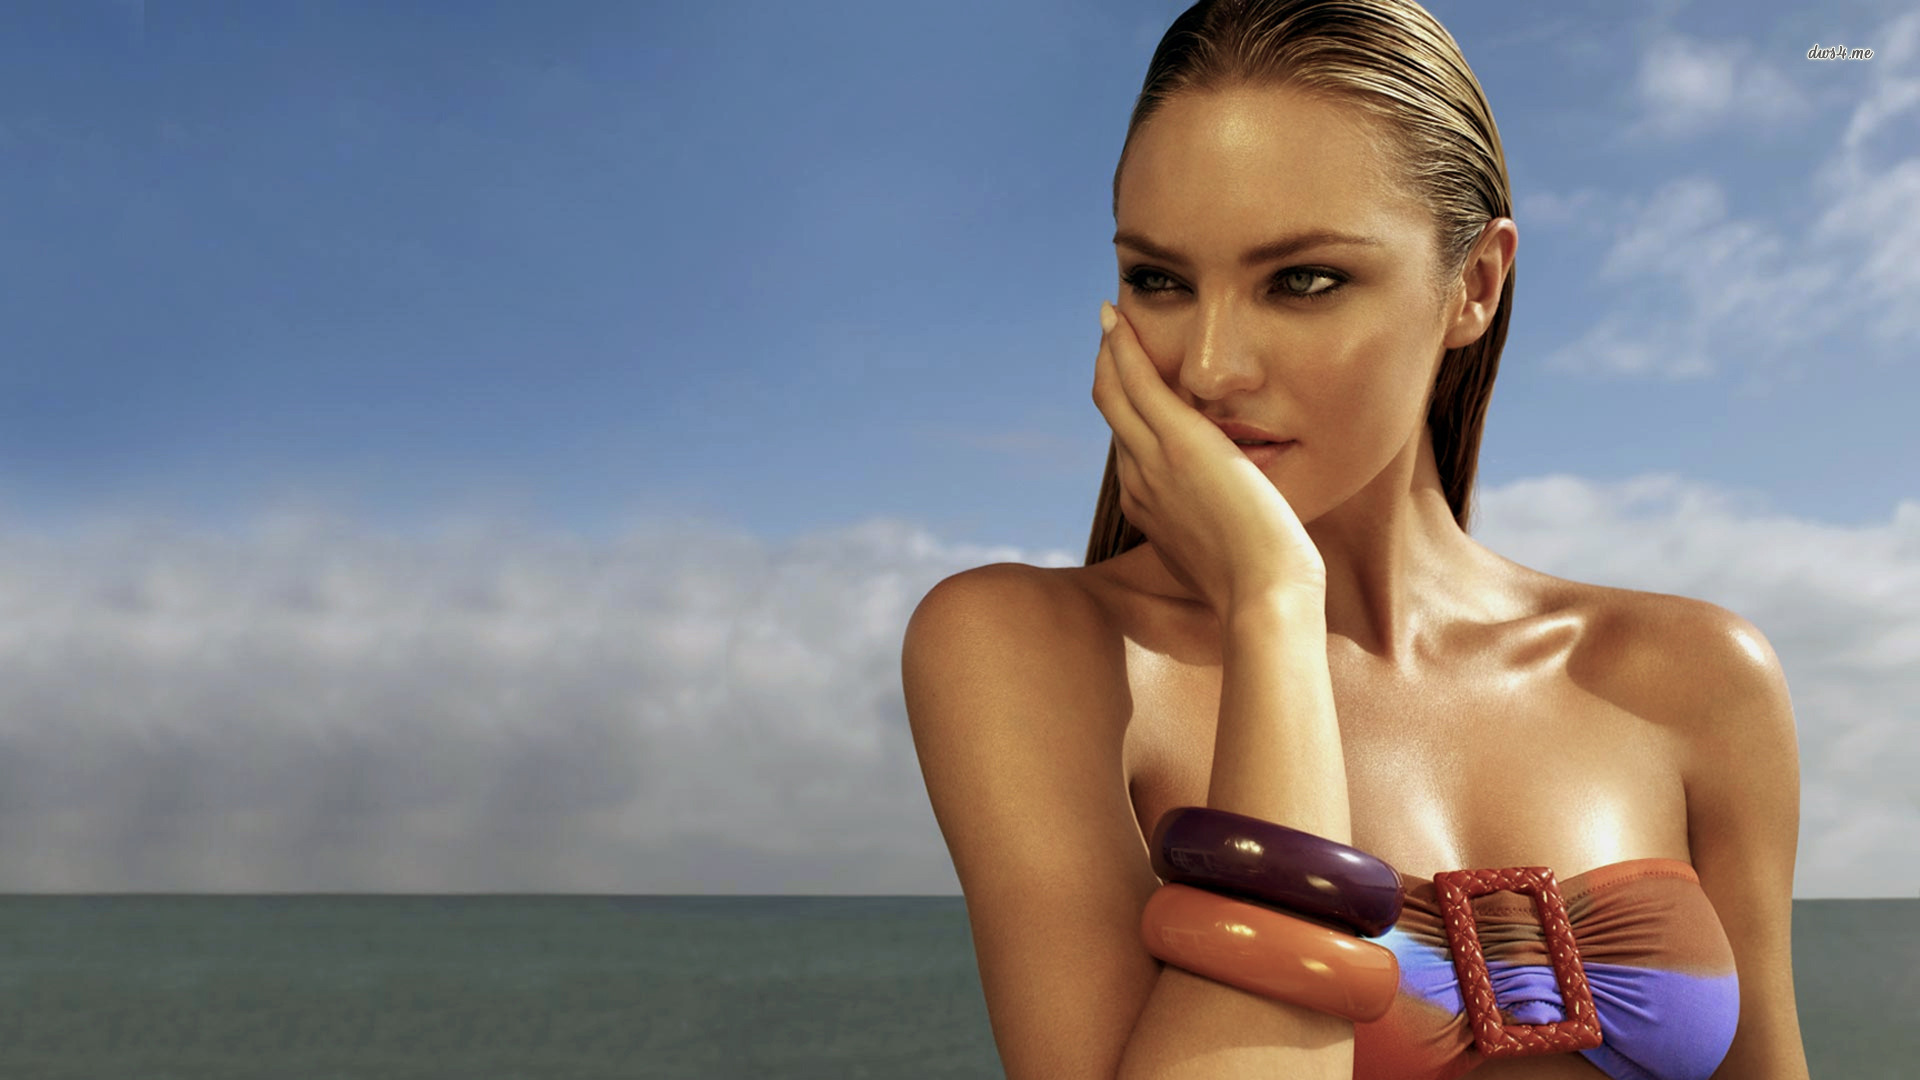 Hd Wallpapers Brands Logos Candice Swanepoel Wallpapers Pictures Images